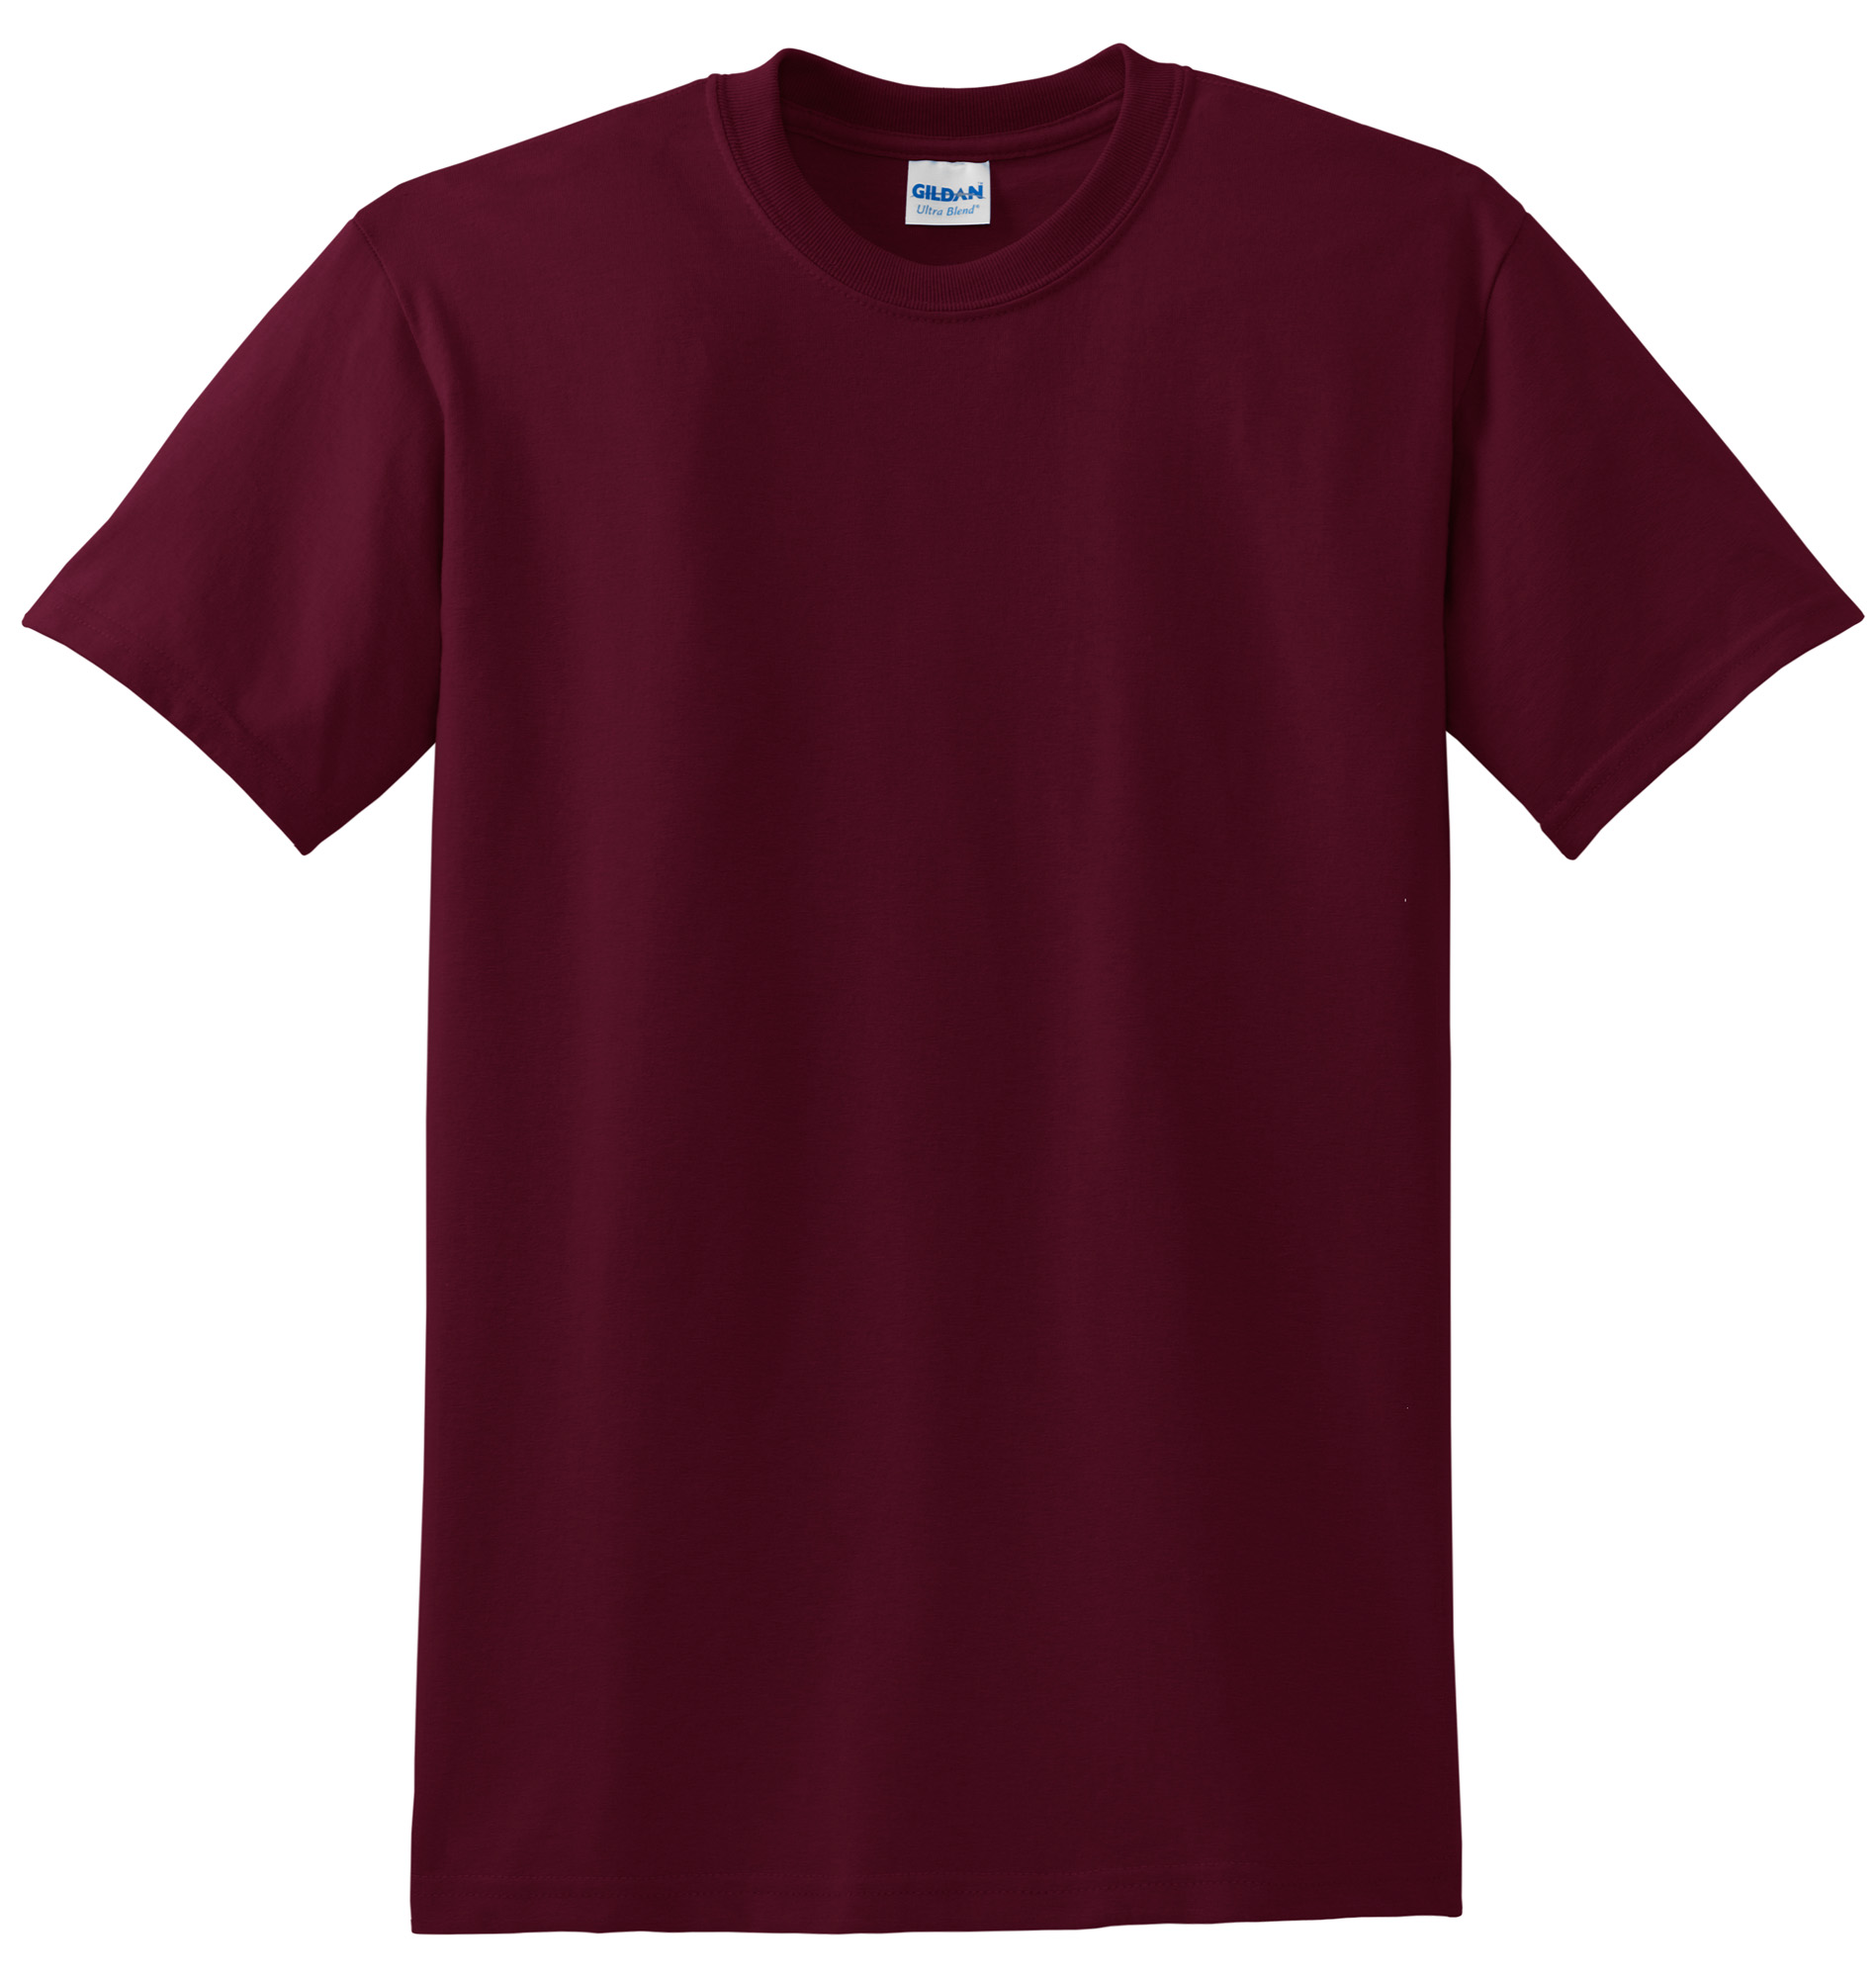 Gildan dryblend 50 cotton 50 dryblend poly t shirt for Gildan dryblend 50 cotton 50 poly t shirt 8000